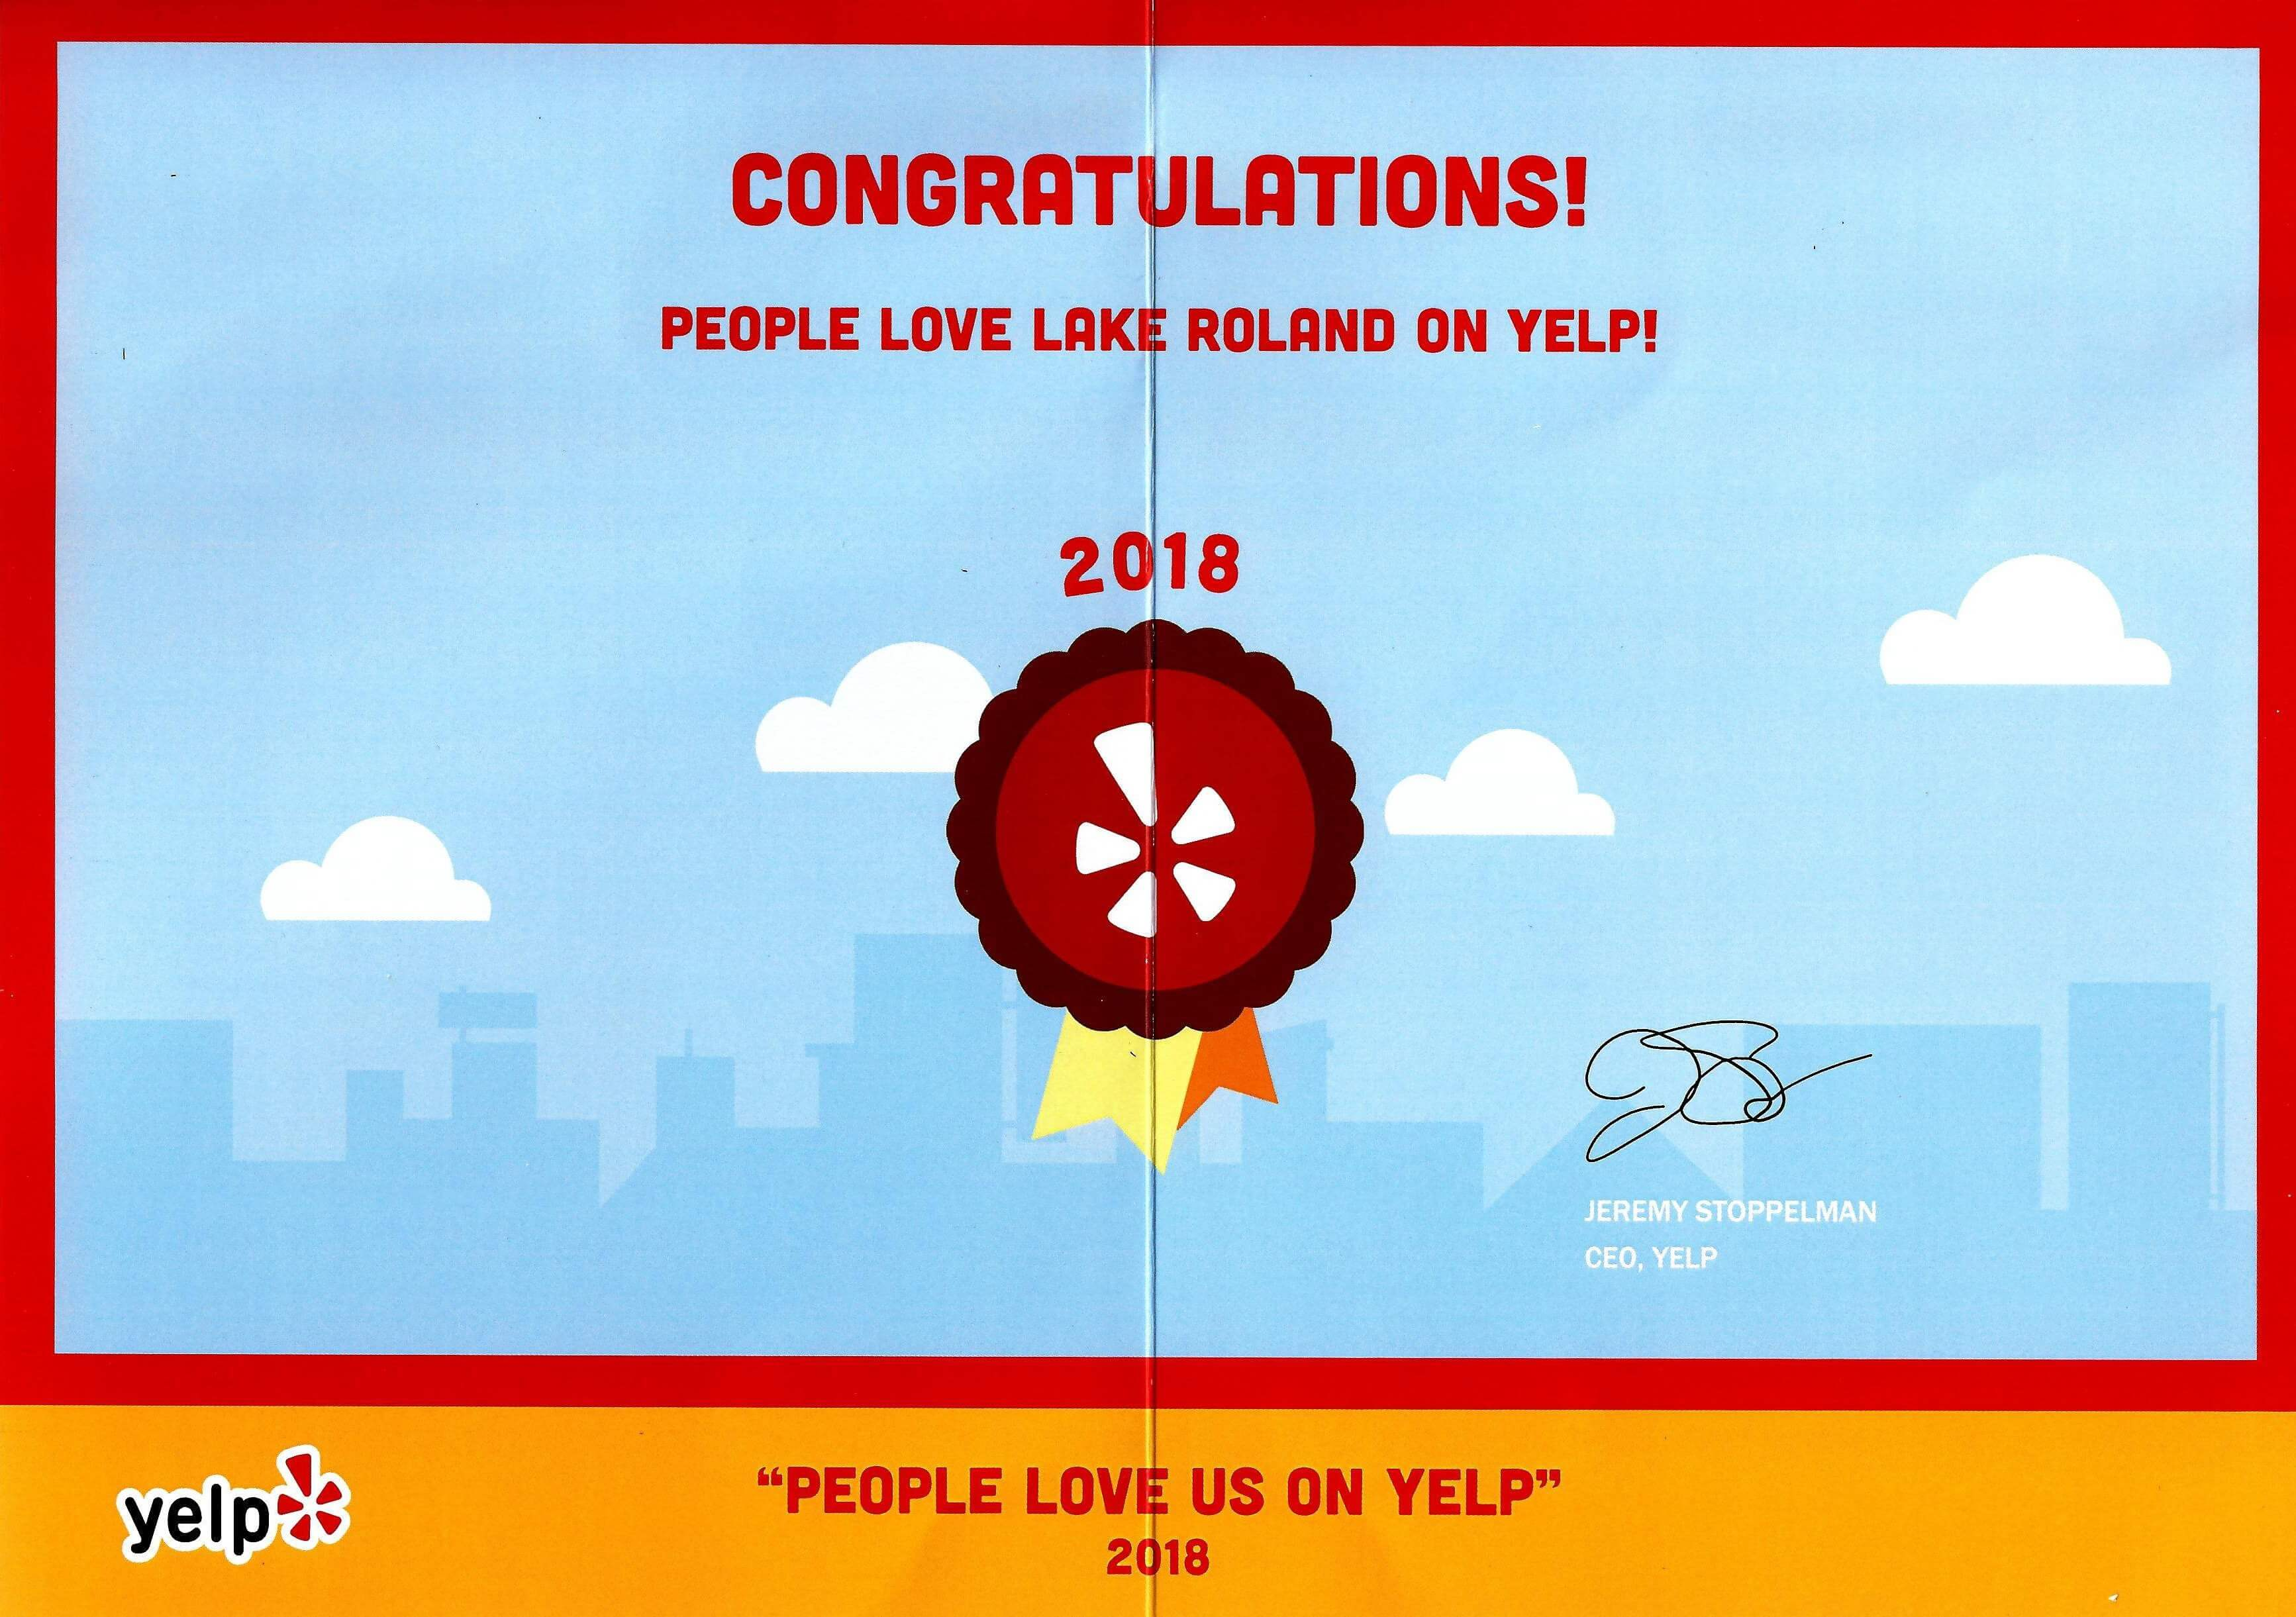 People love Lake Roland on Yelp!